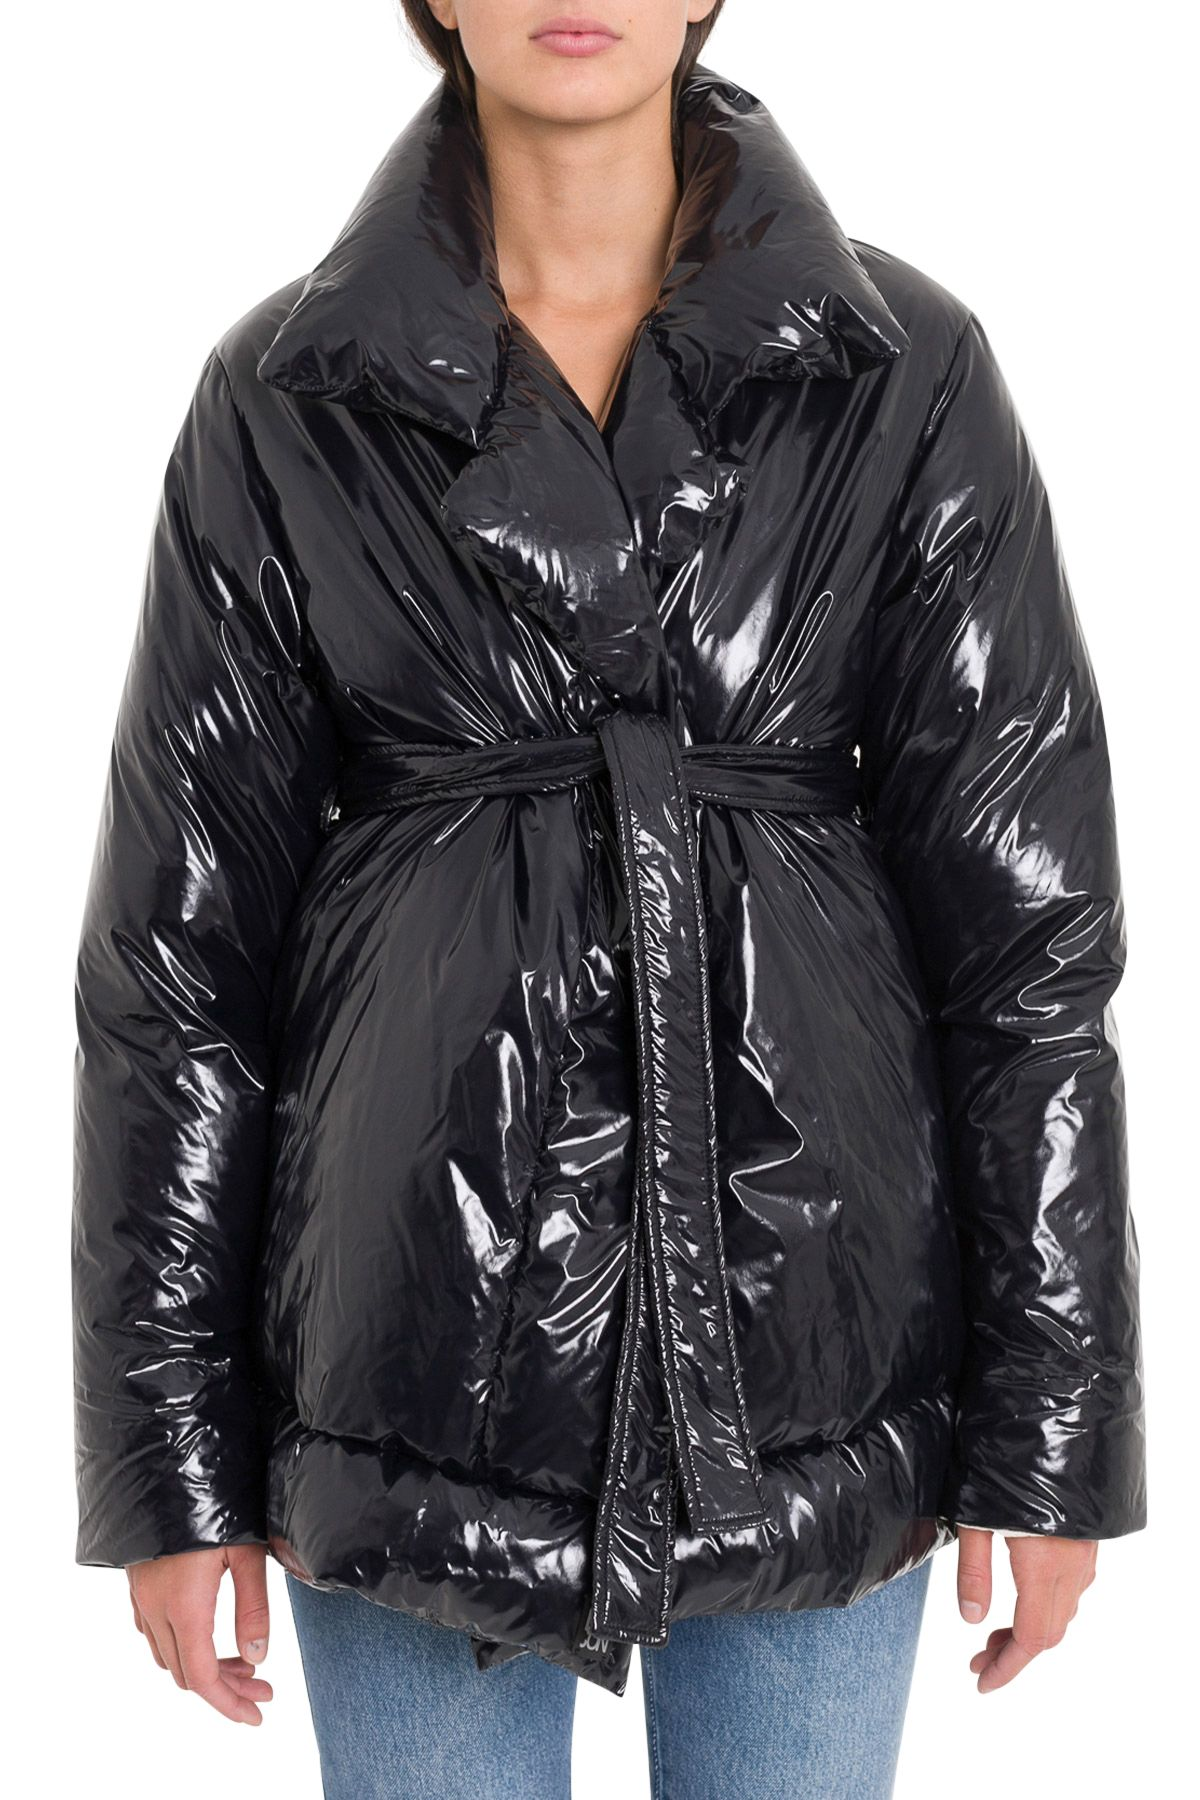 BACON CLOTHING Belted Puffer Jacket in Black